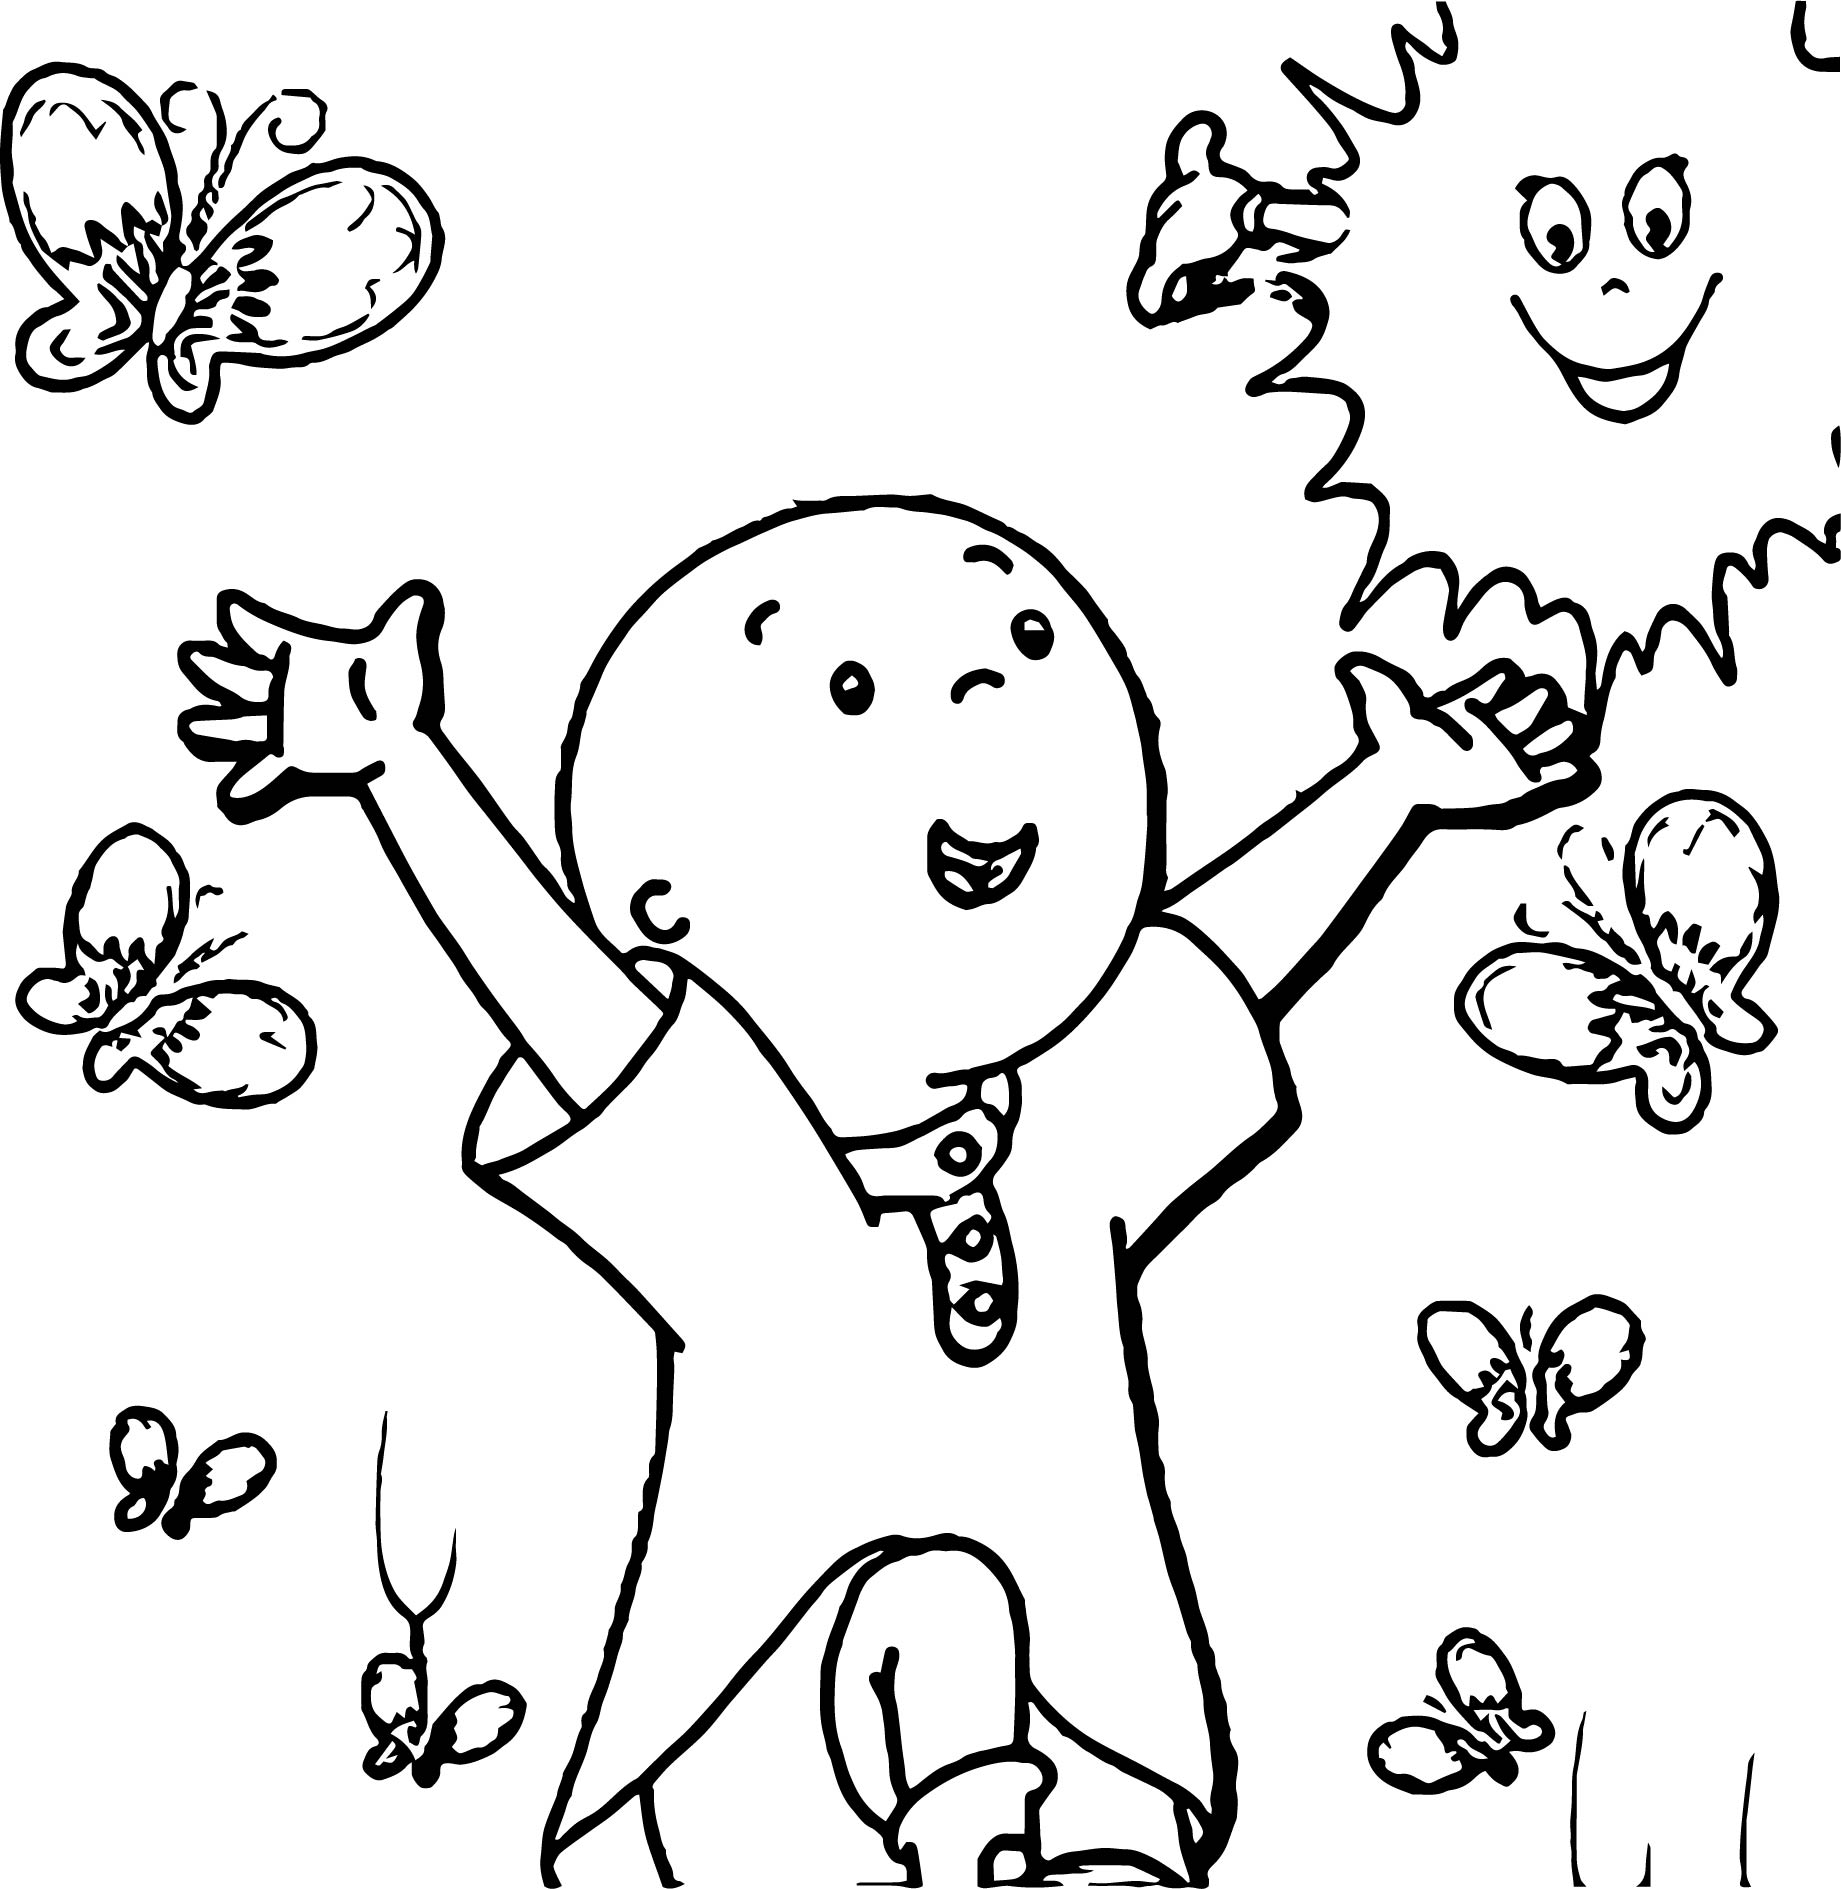 Show Poster Caillou Coloring Page